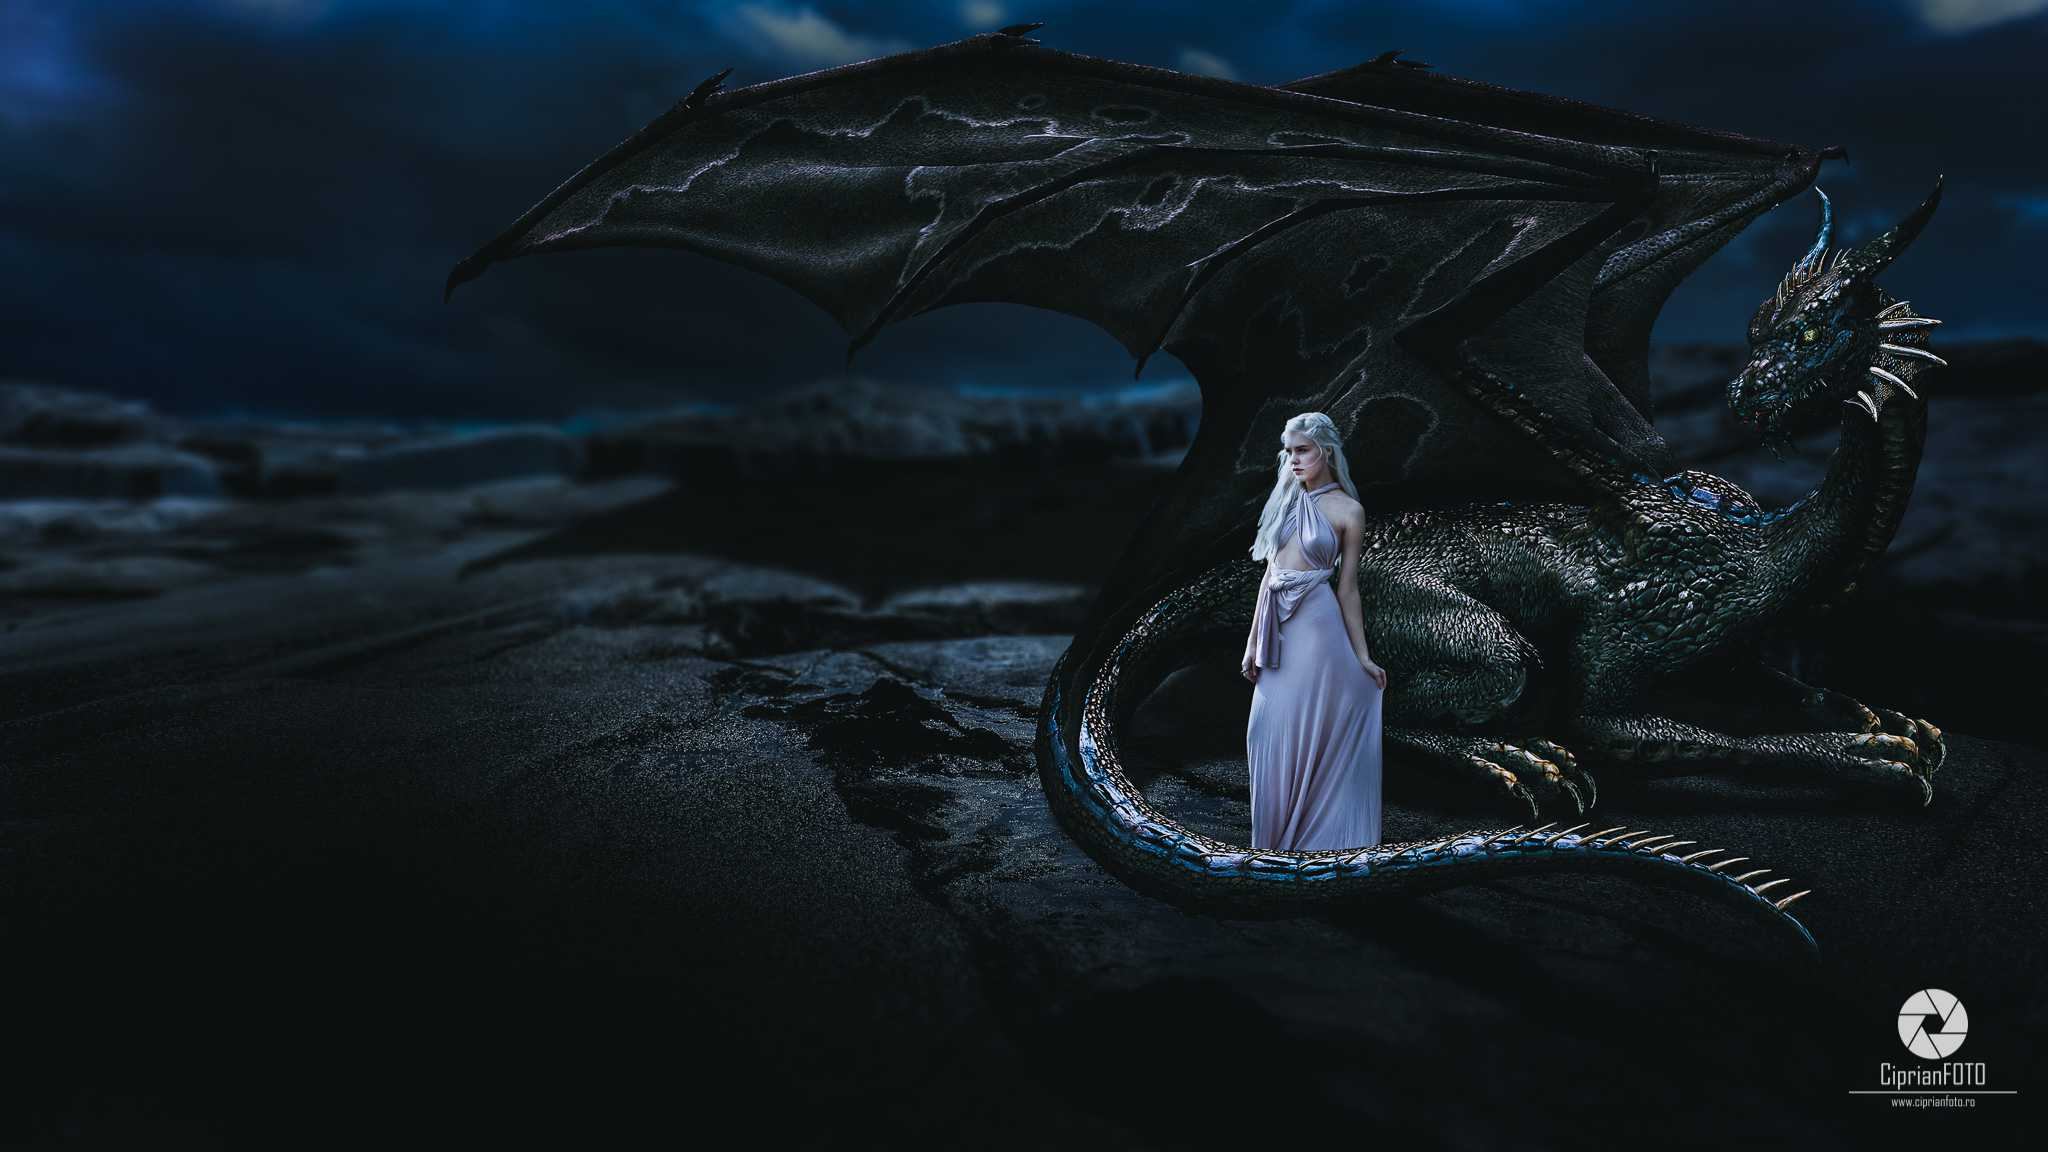 The Princess Of The Dragon, Photoshop Manipulation Tutorial, CiprianFOTO